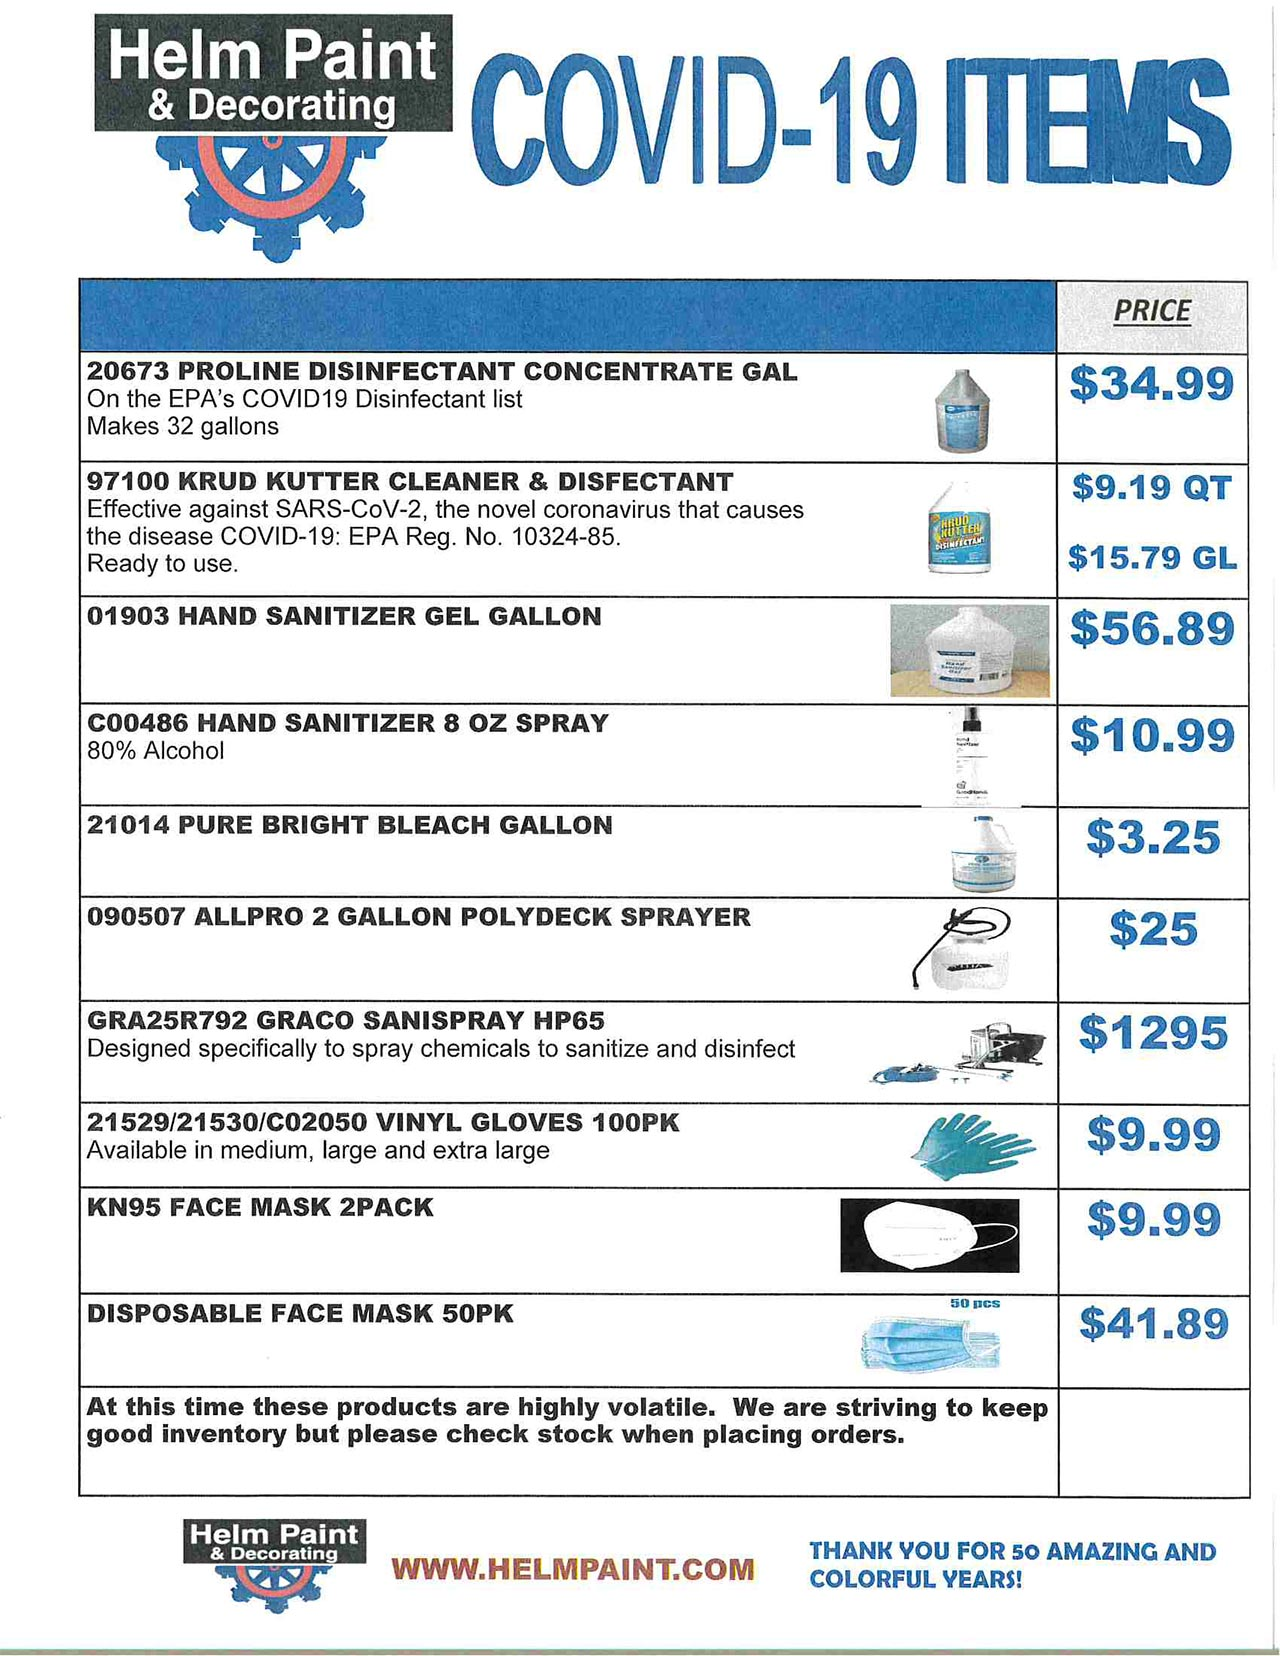 Helm Paint Covid-19 items Promos